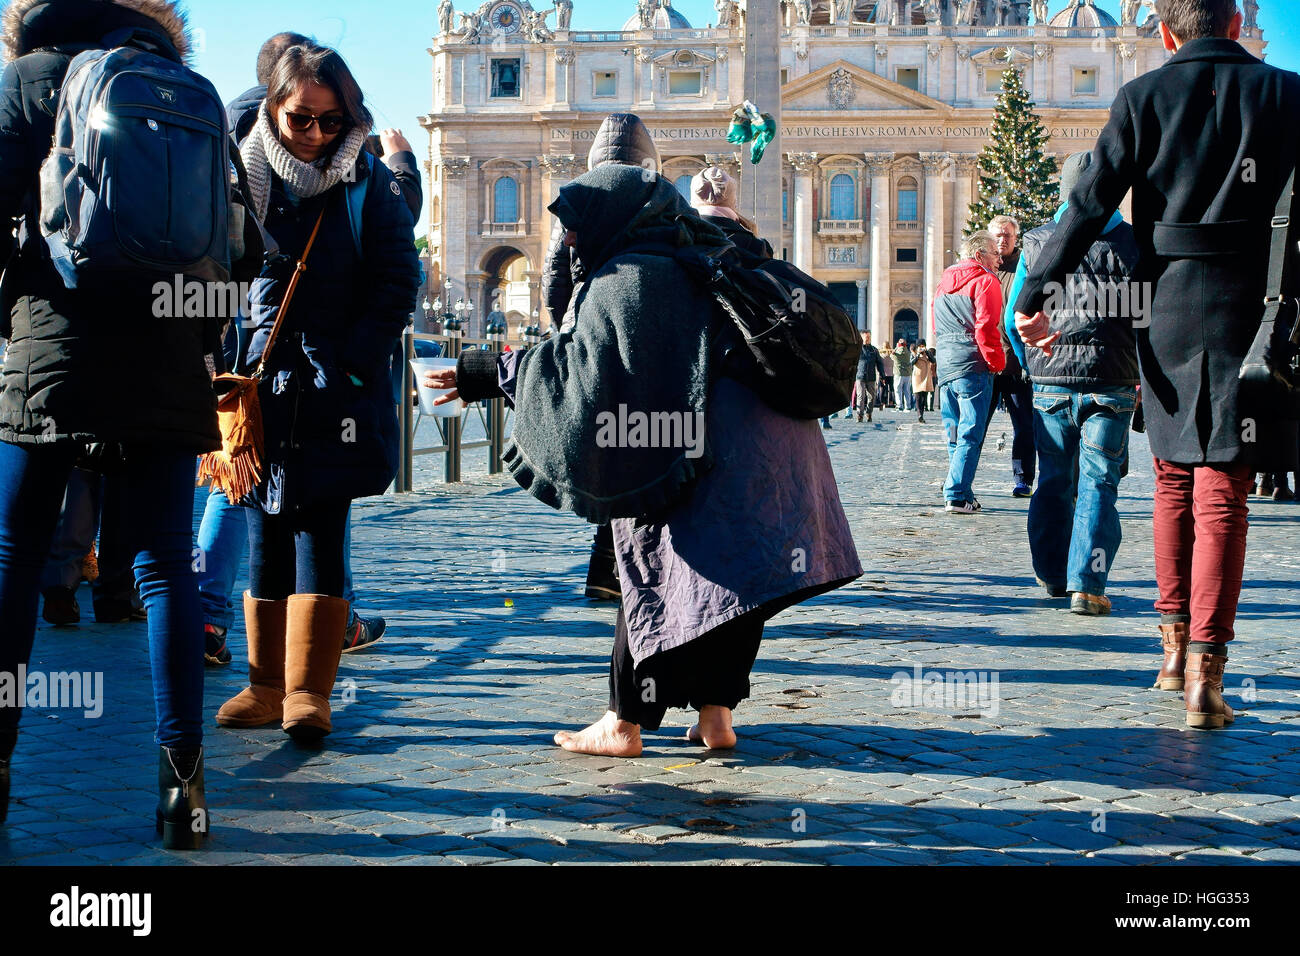 Unidentified  beggar begging among a crowd of people passing through in St. Peter's square. Vatican city, Rome, - Stock Image